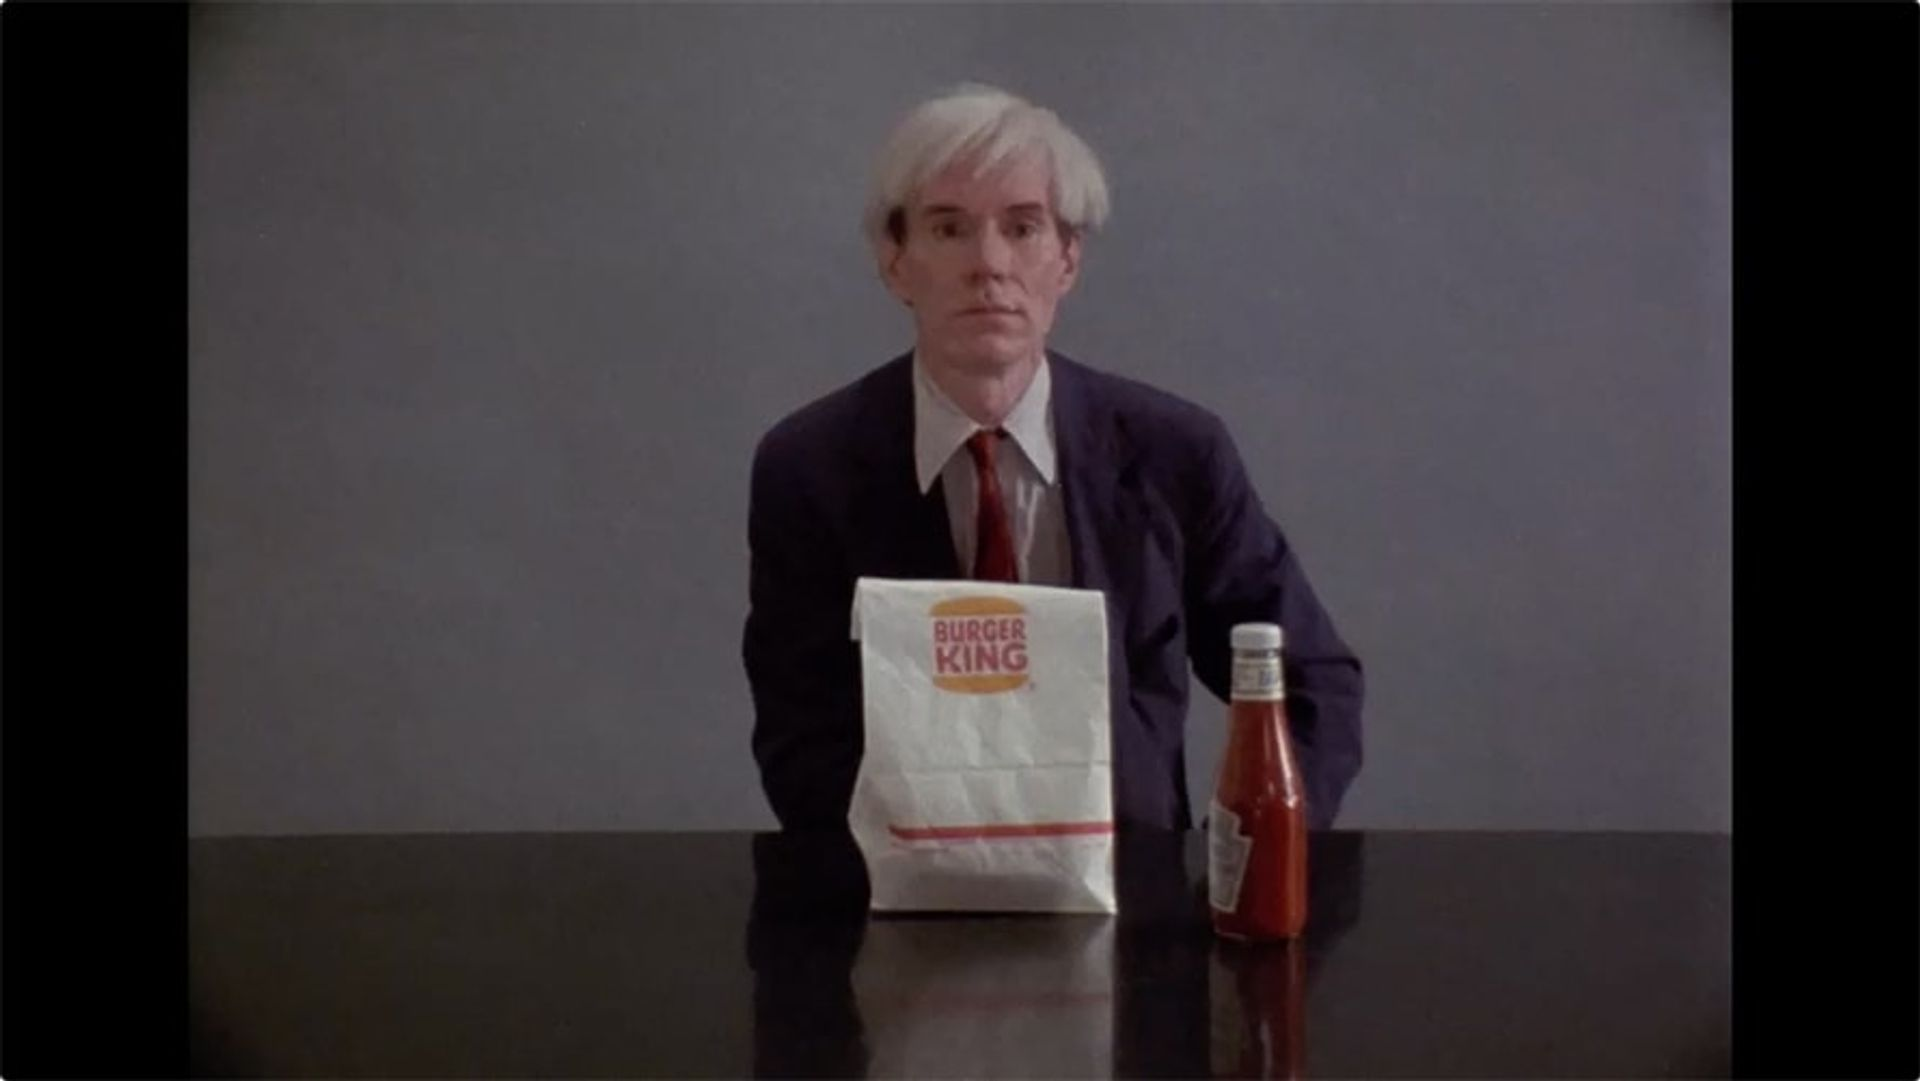 Andy Warhol eats a hamburger, from the Danish director Jorgen Leth's 1982 film 66 Scenes from America